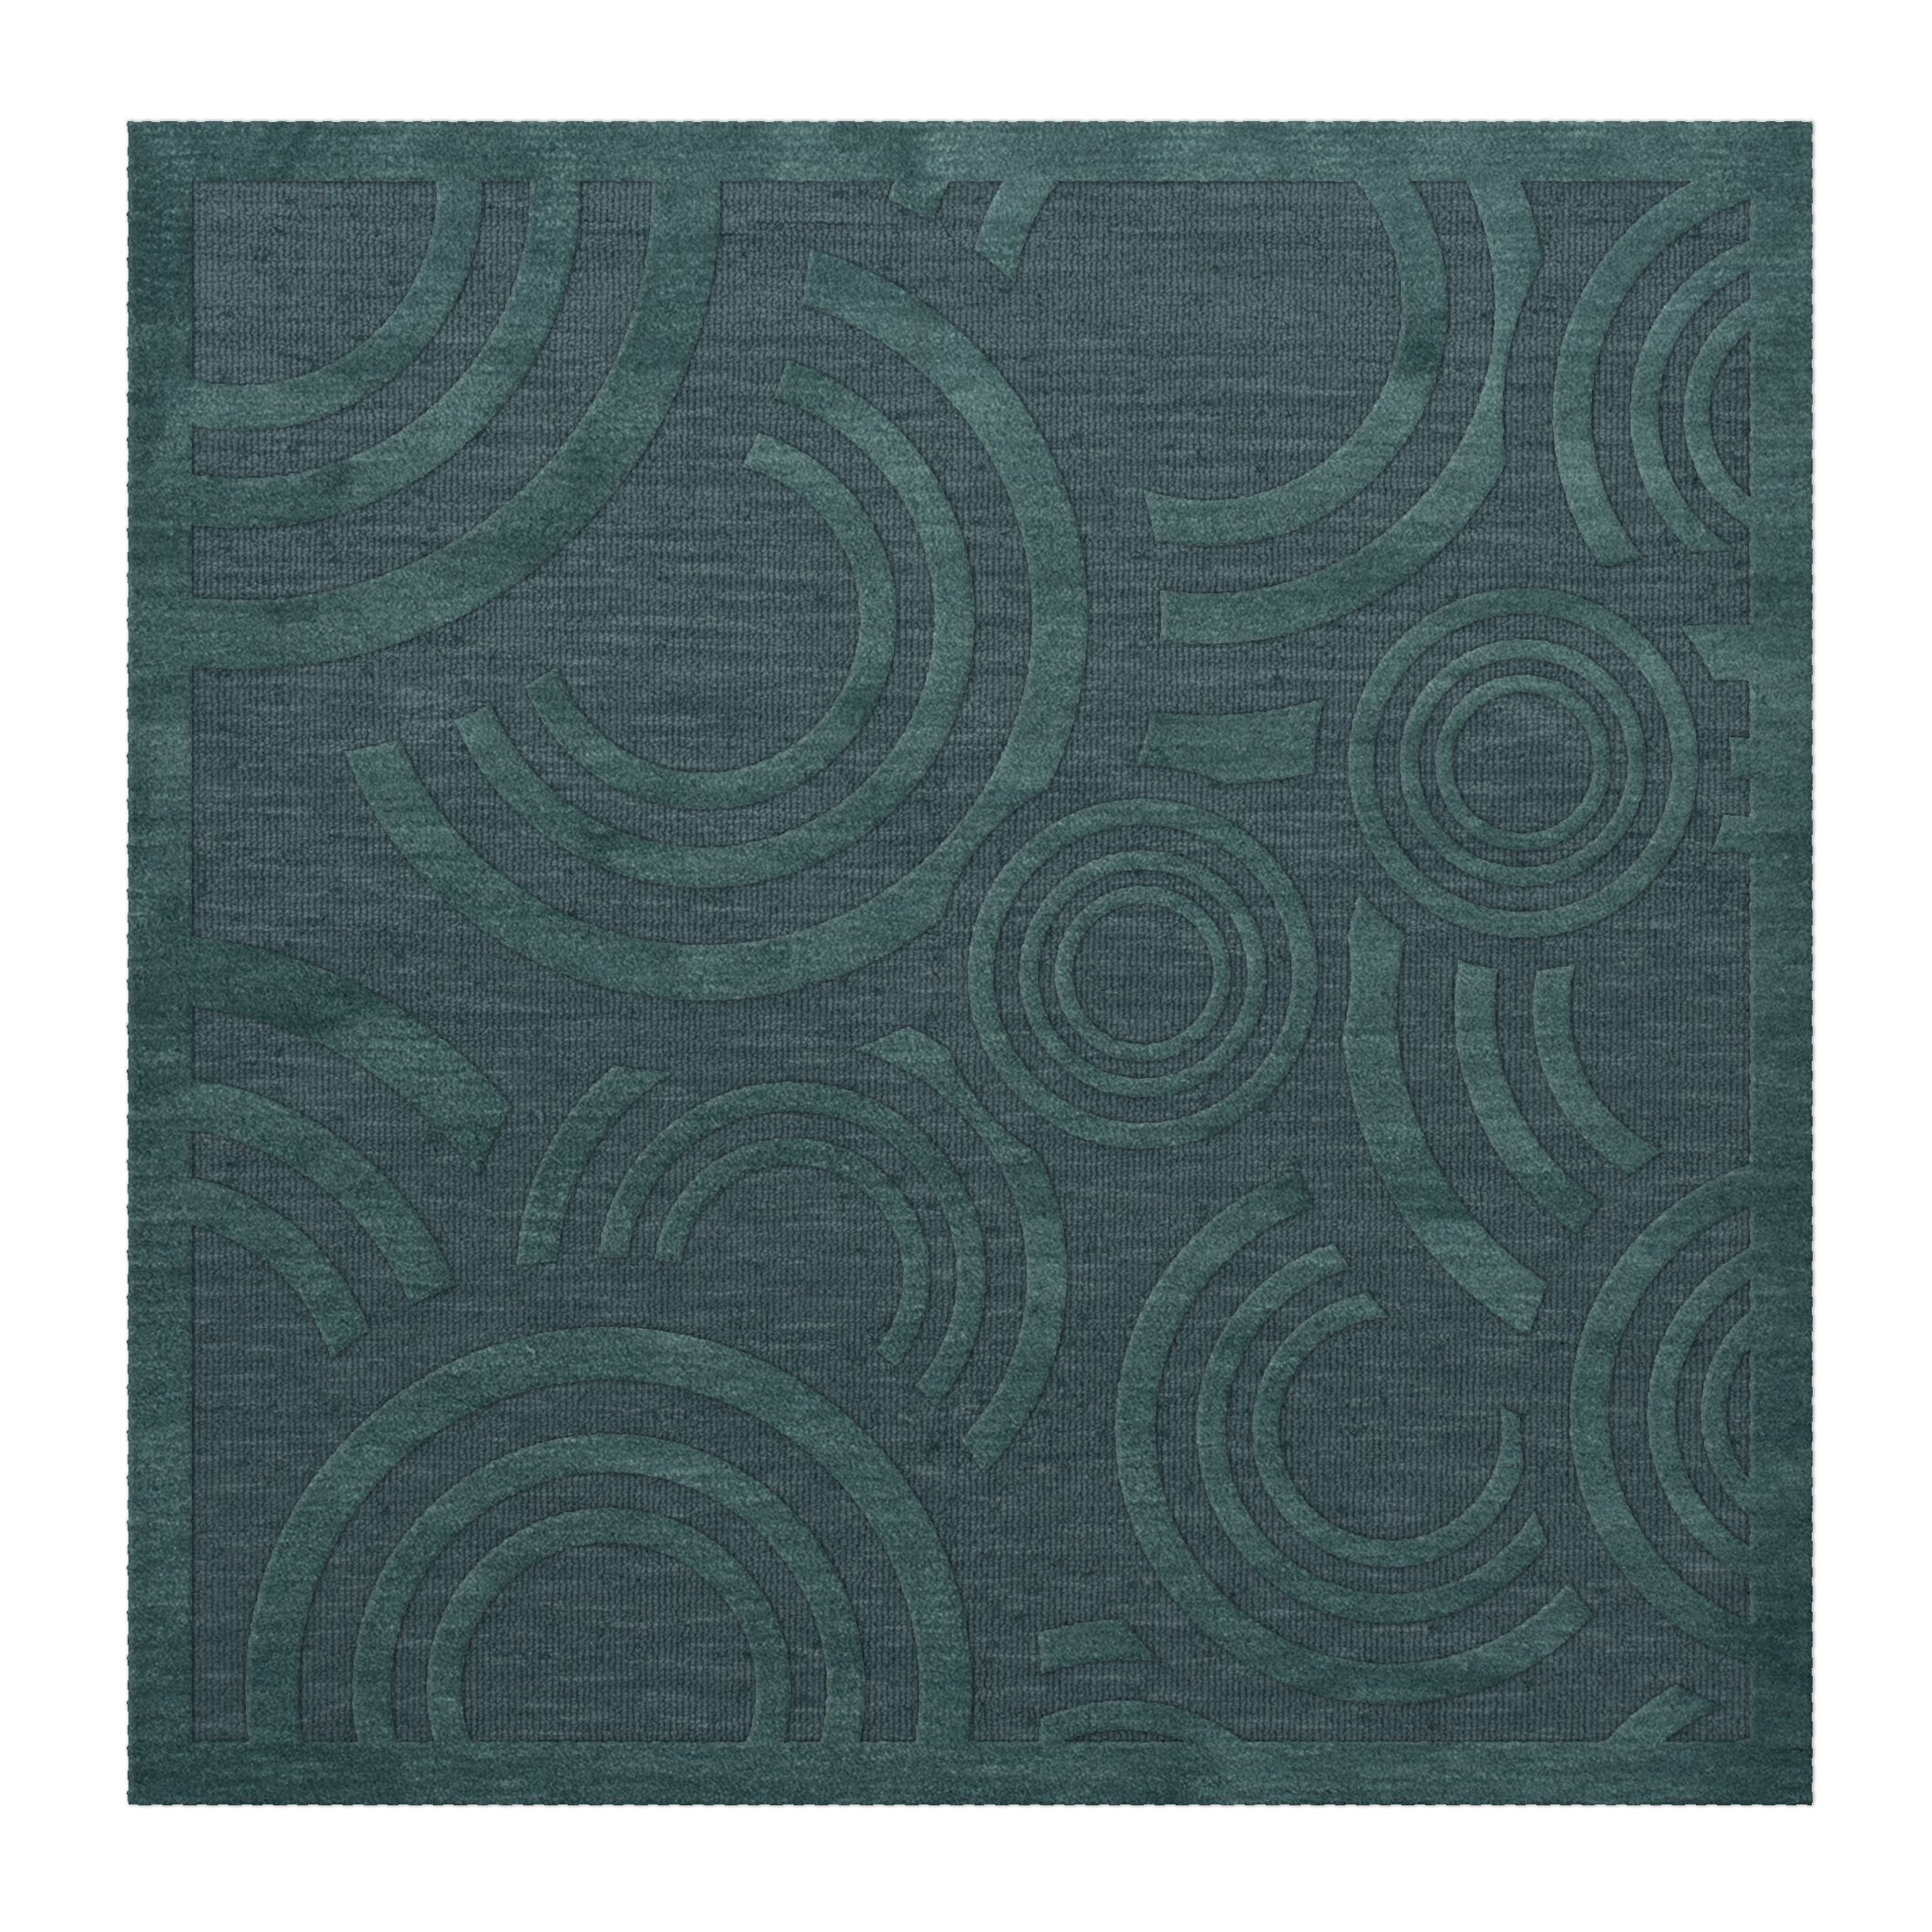 Dover Tufted Wool Teal Area Rug Rug Size: Square 4'